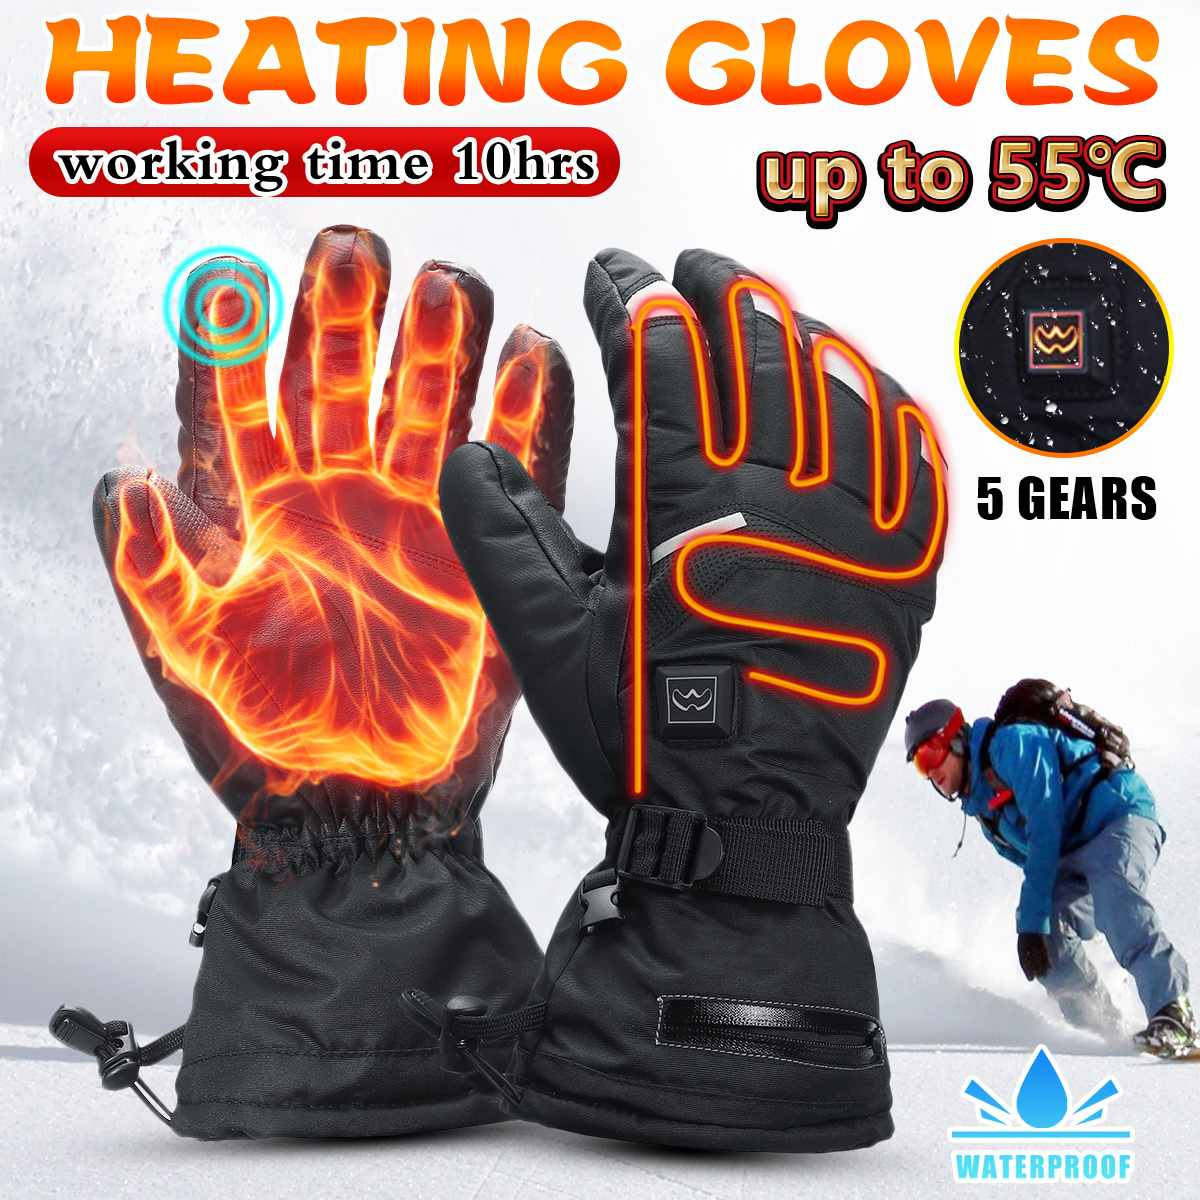 Electric Heated Gloves Waterproof Thermal Winter Hand Warmer Touch Screen 5 Gear Adjustable Temp Motorcycle Ricing Skiing Gloves